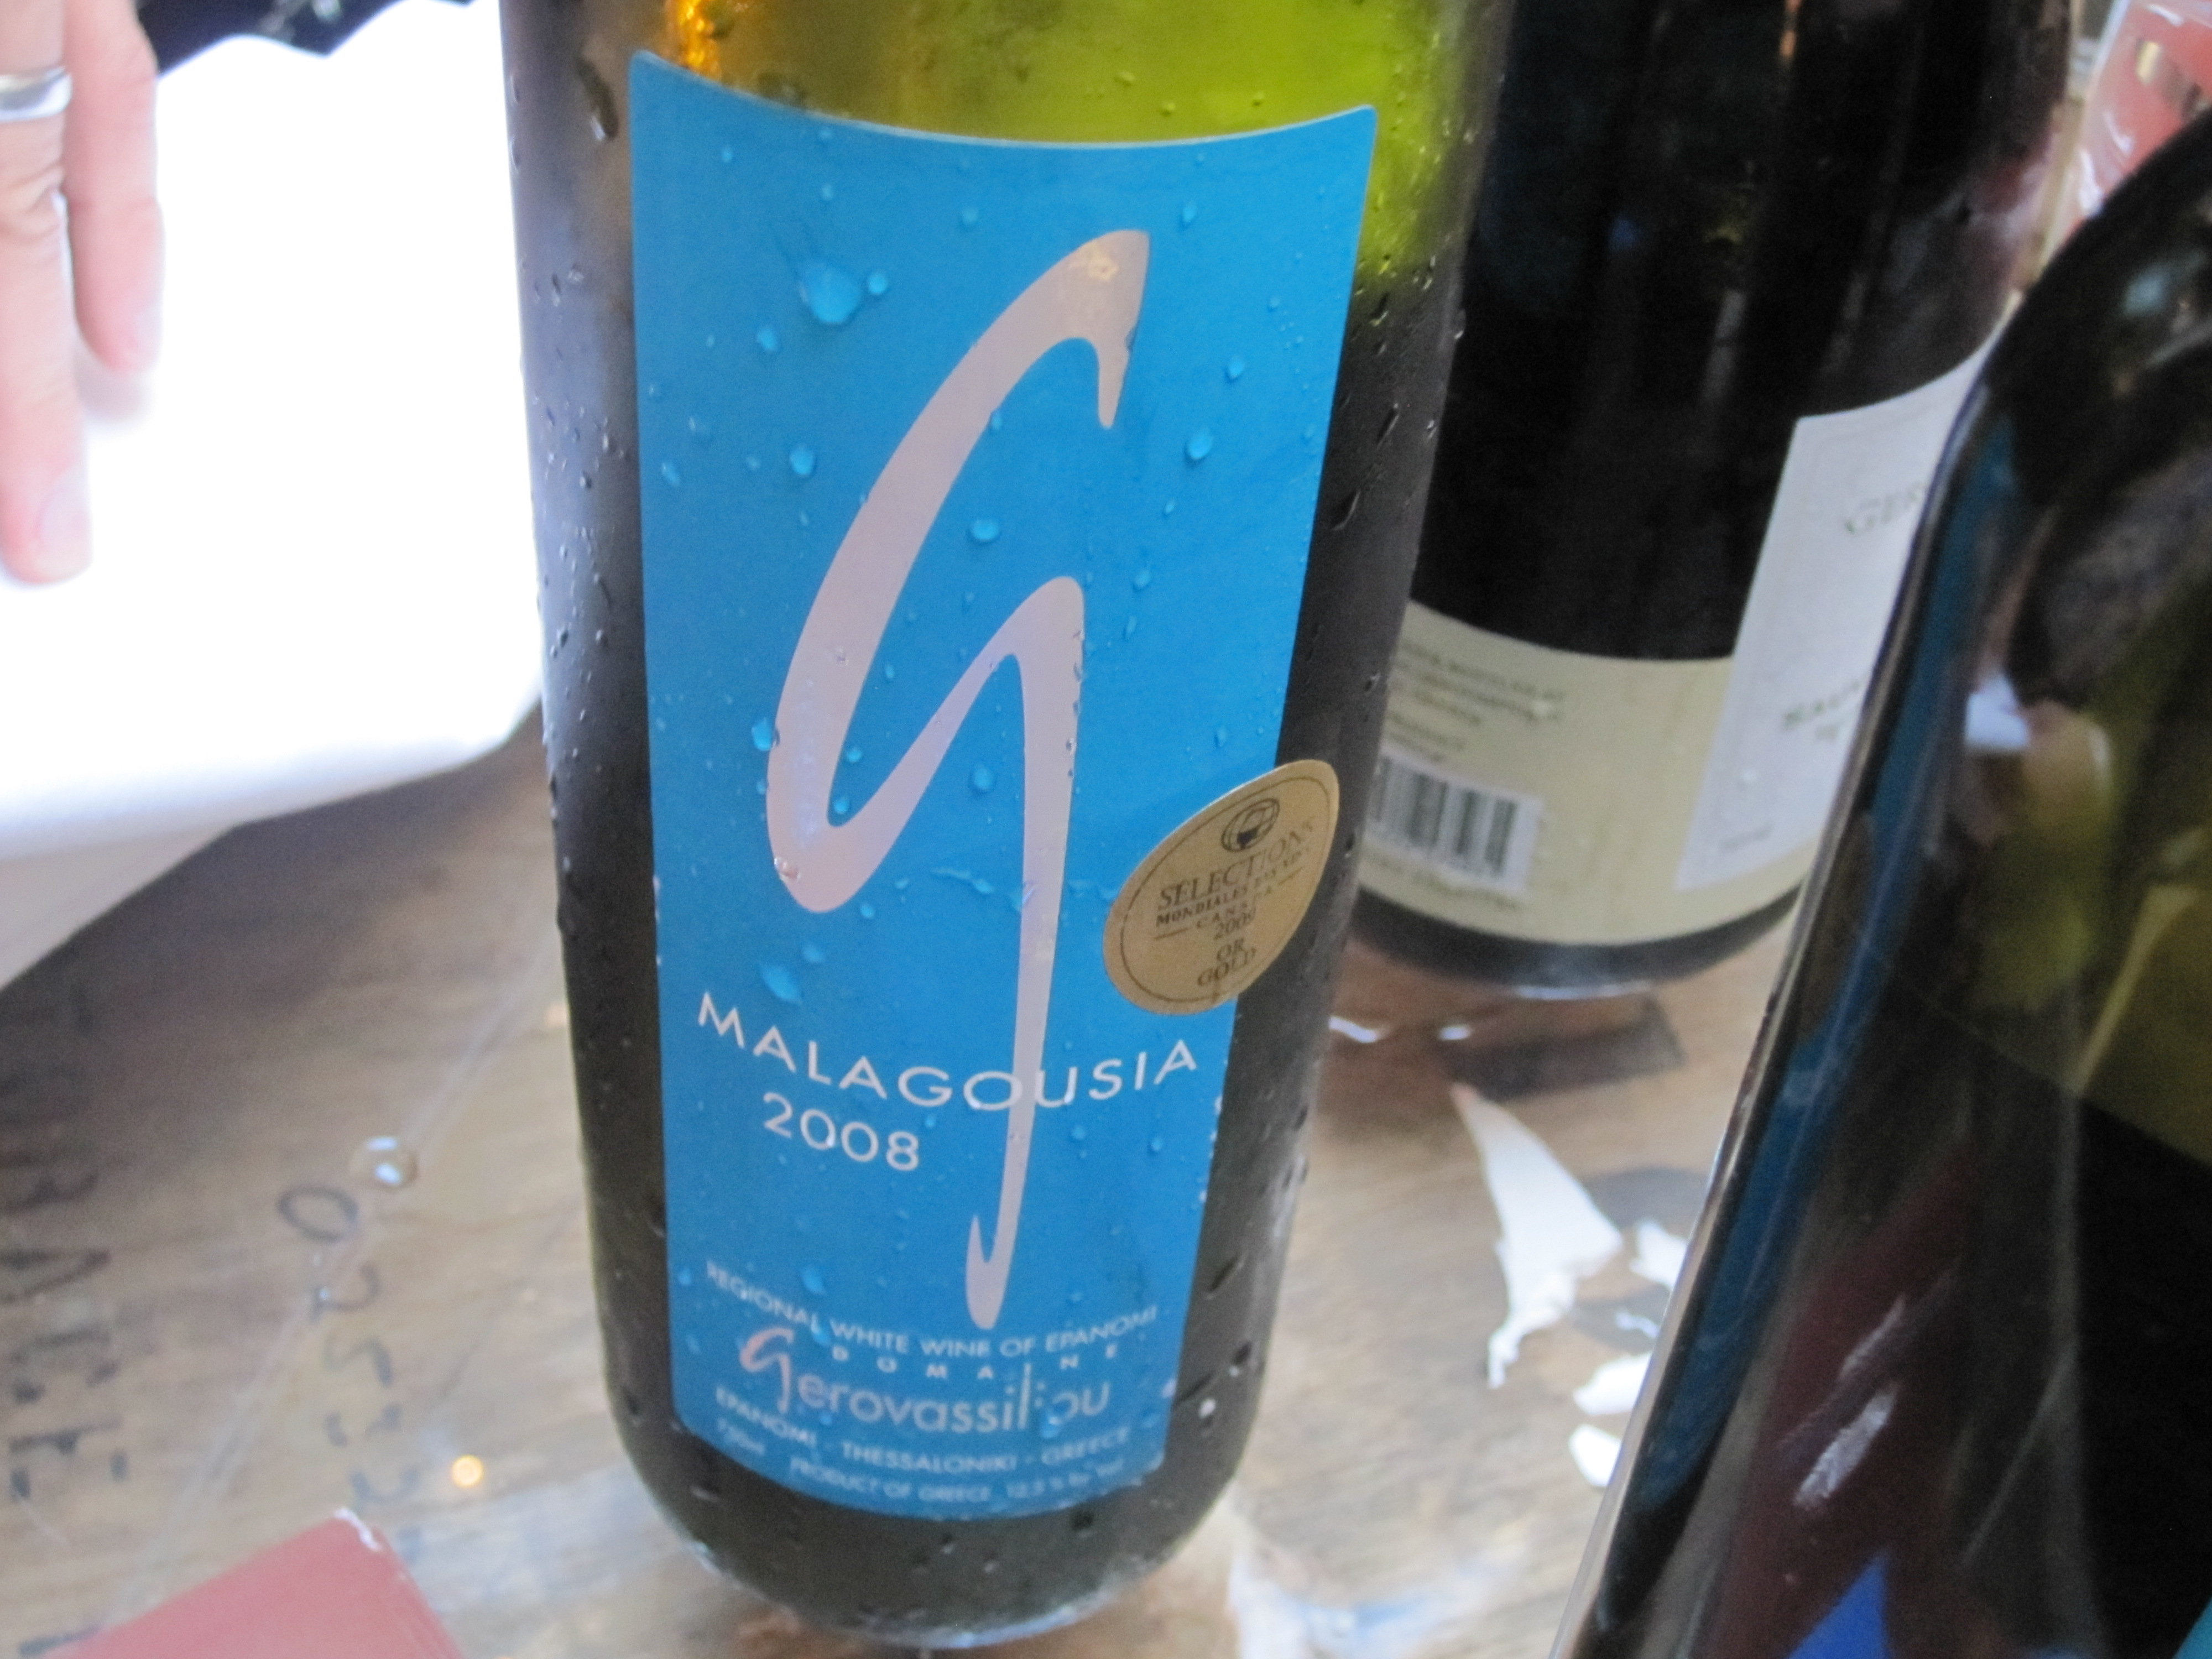 I'm not too familiar with Greek wine varietals, but this white was refreshing and lovely.